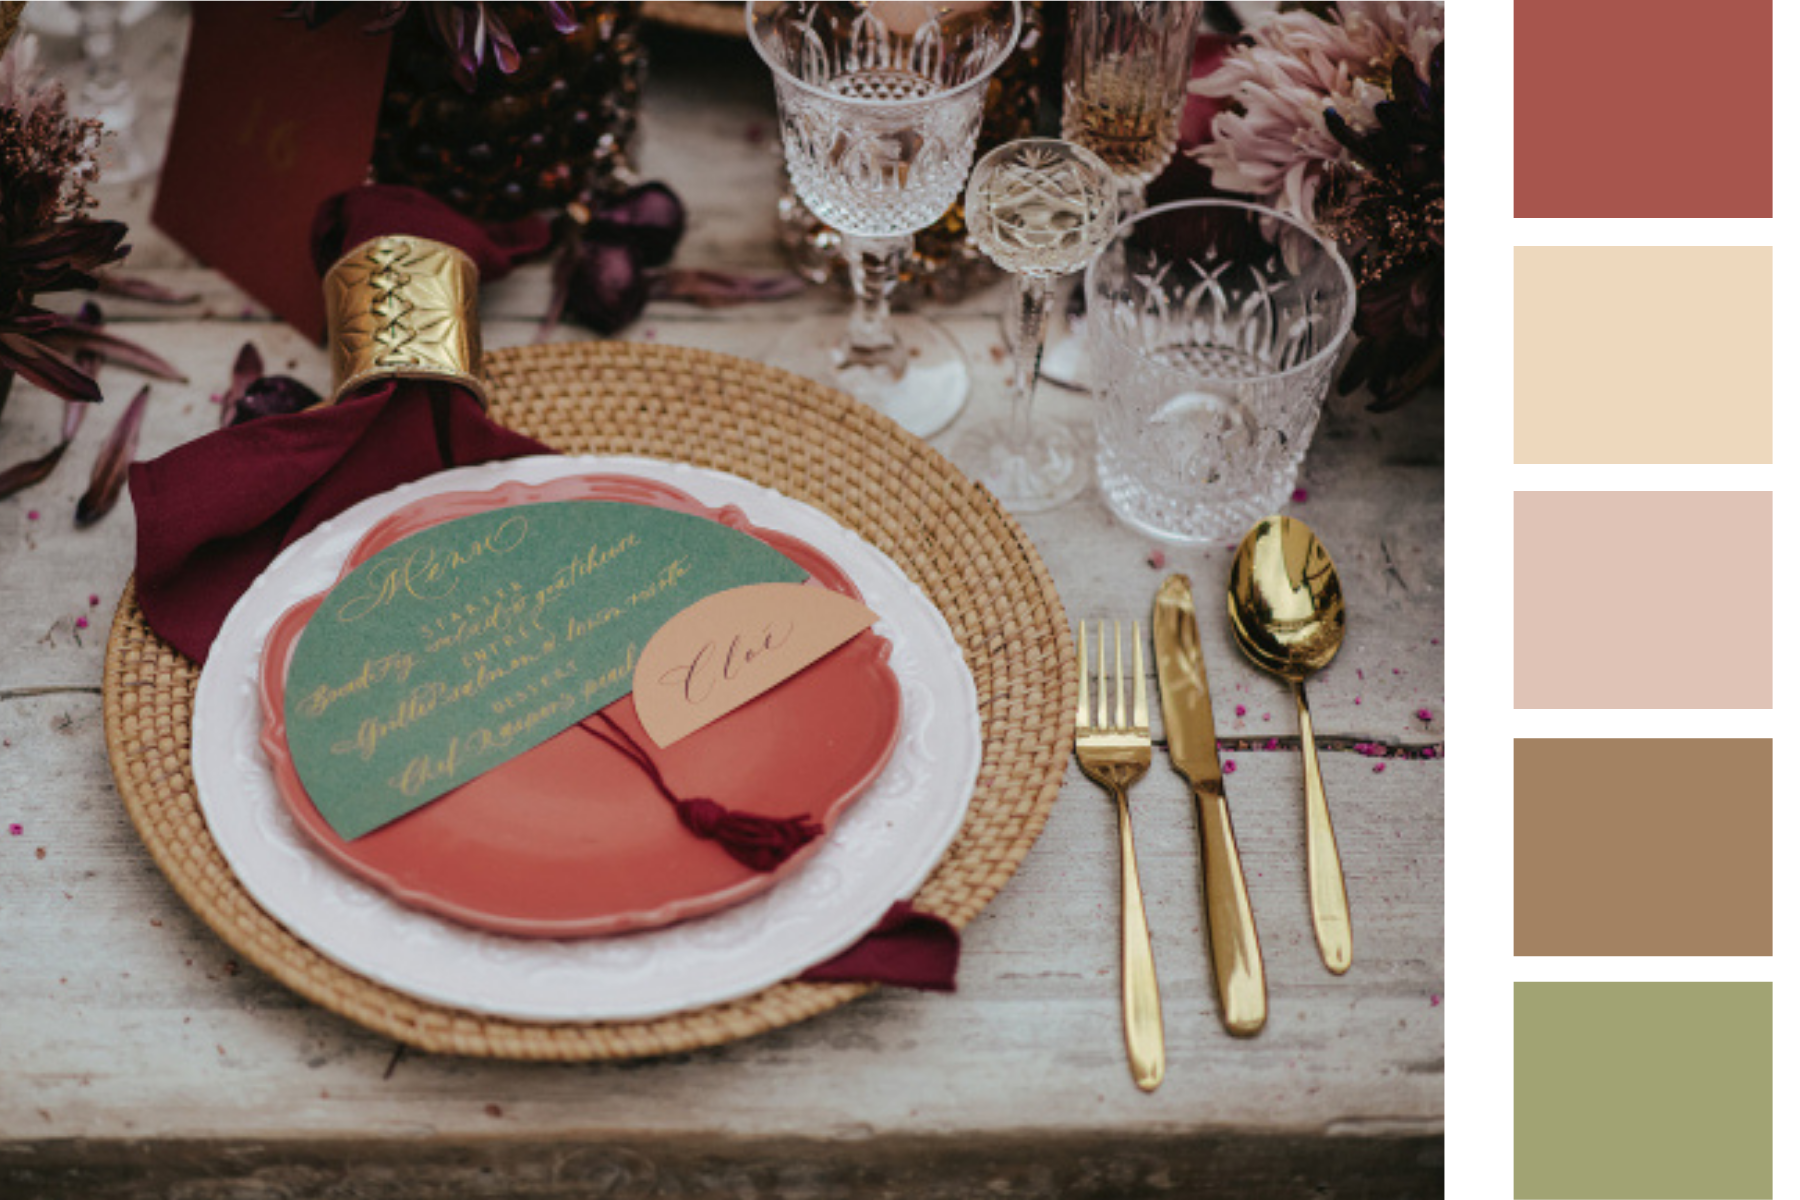 Table setting and colors